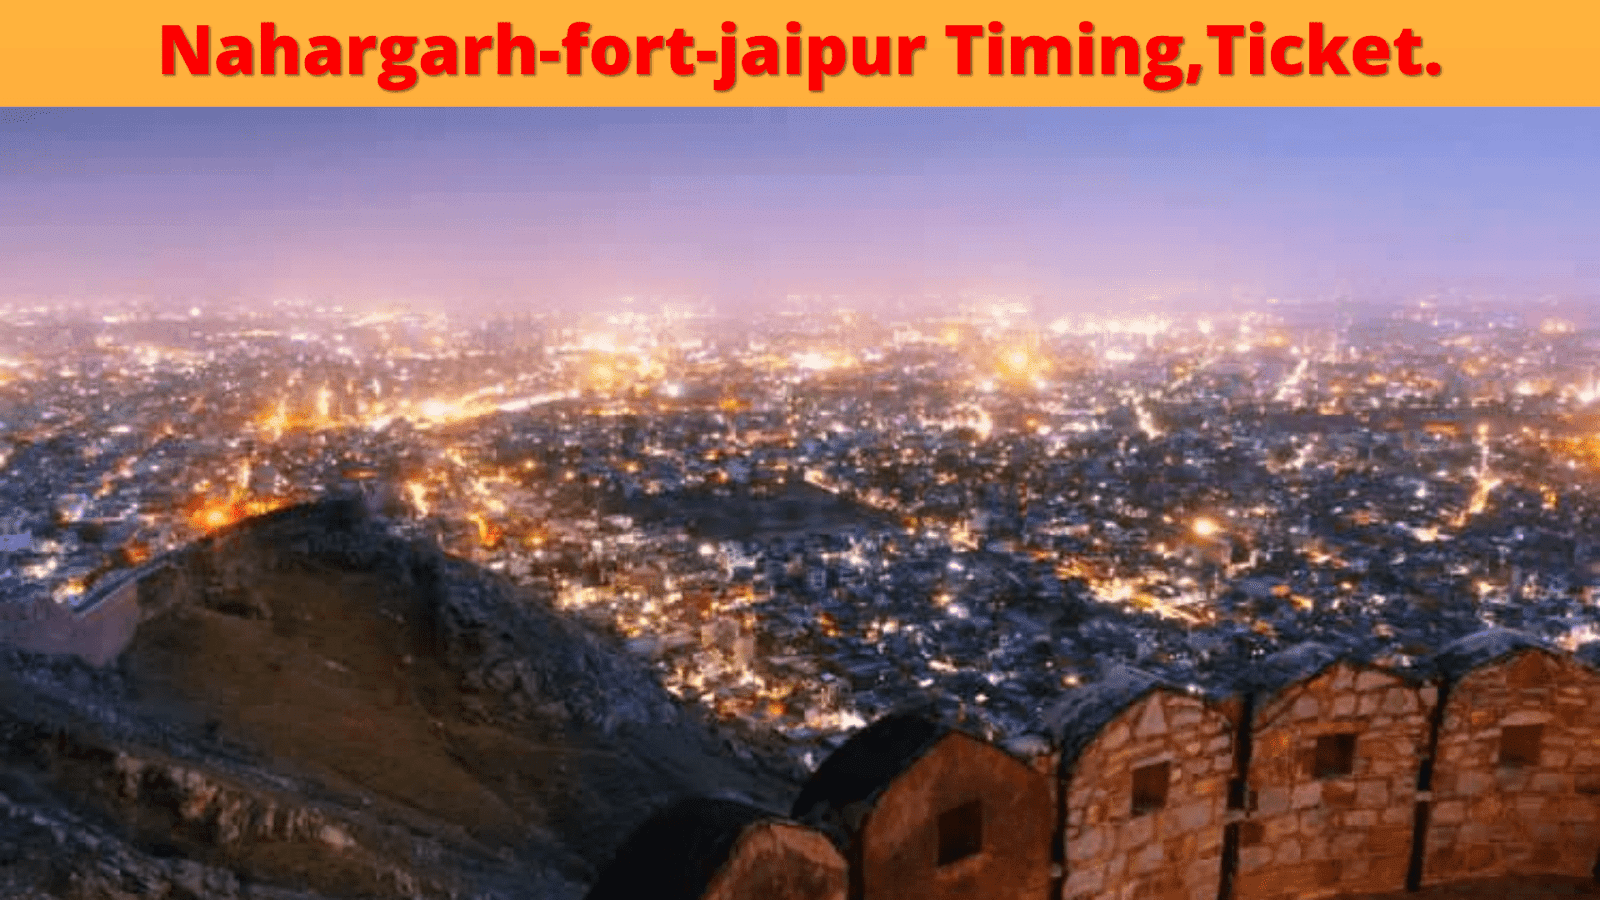 nahargarh-fort,timing,ticket